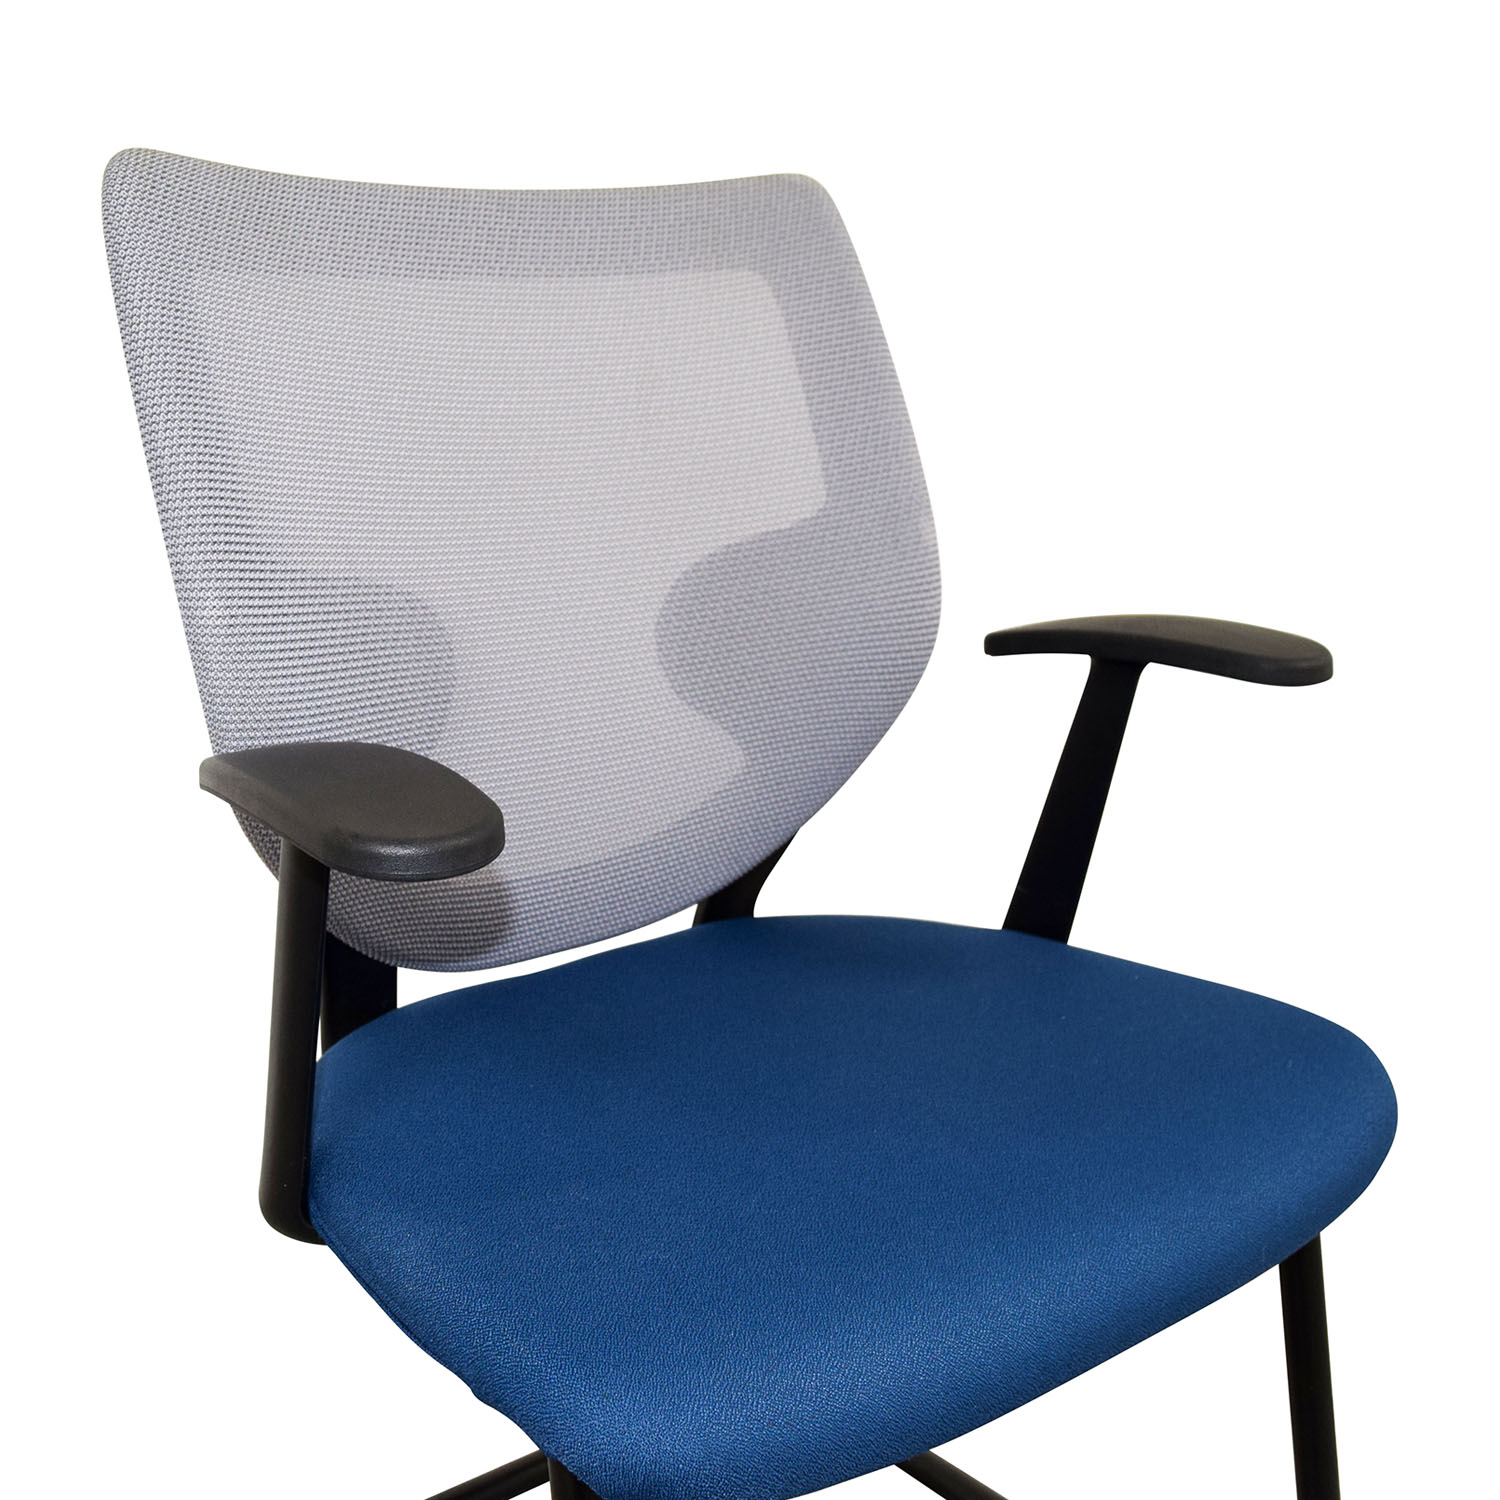 Admirable 90 Off Keilhauer Keilhauer Blue Mesh Chair Chairs Caraccident5 Cool Chair Designs And Ideas Caraccident5Info